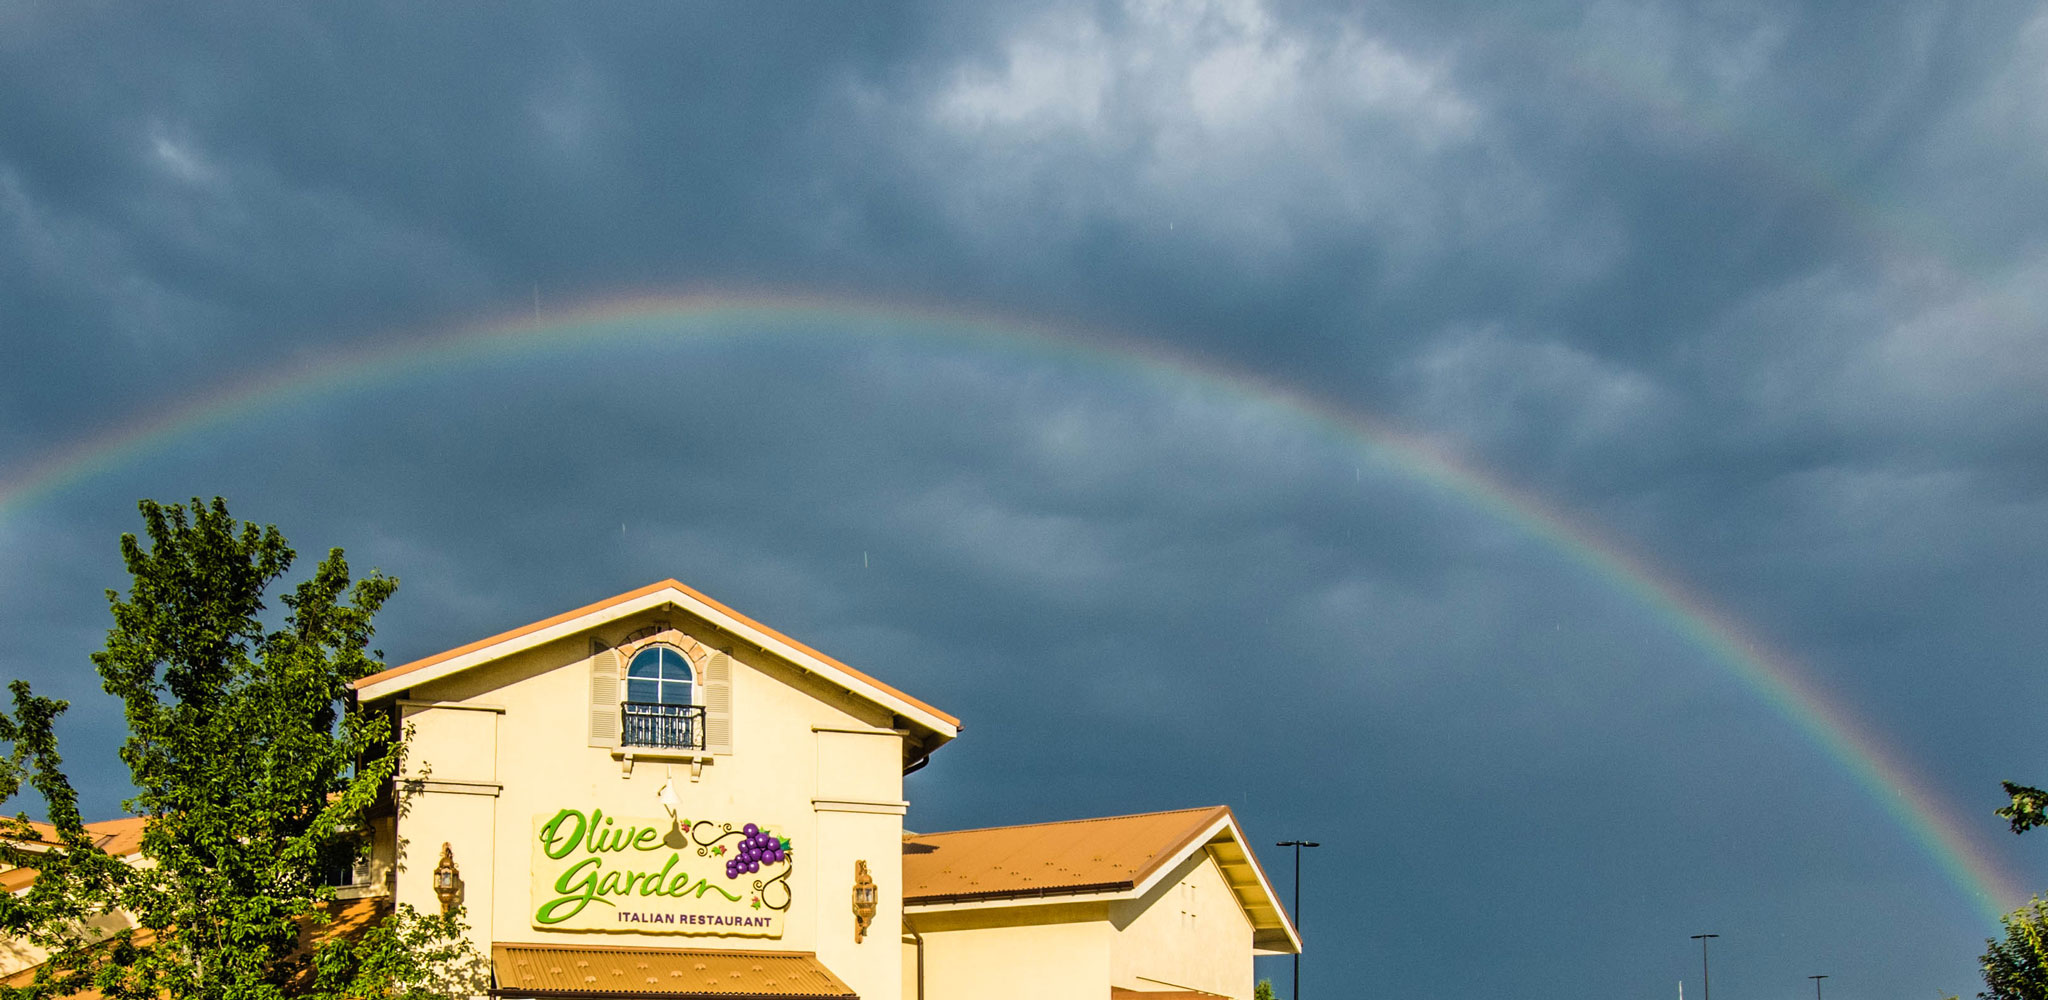 Olive Garden courtesy JRoberts/Flickr